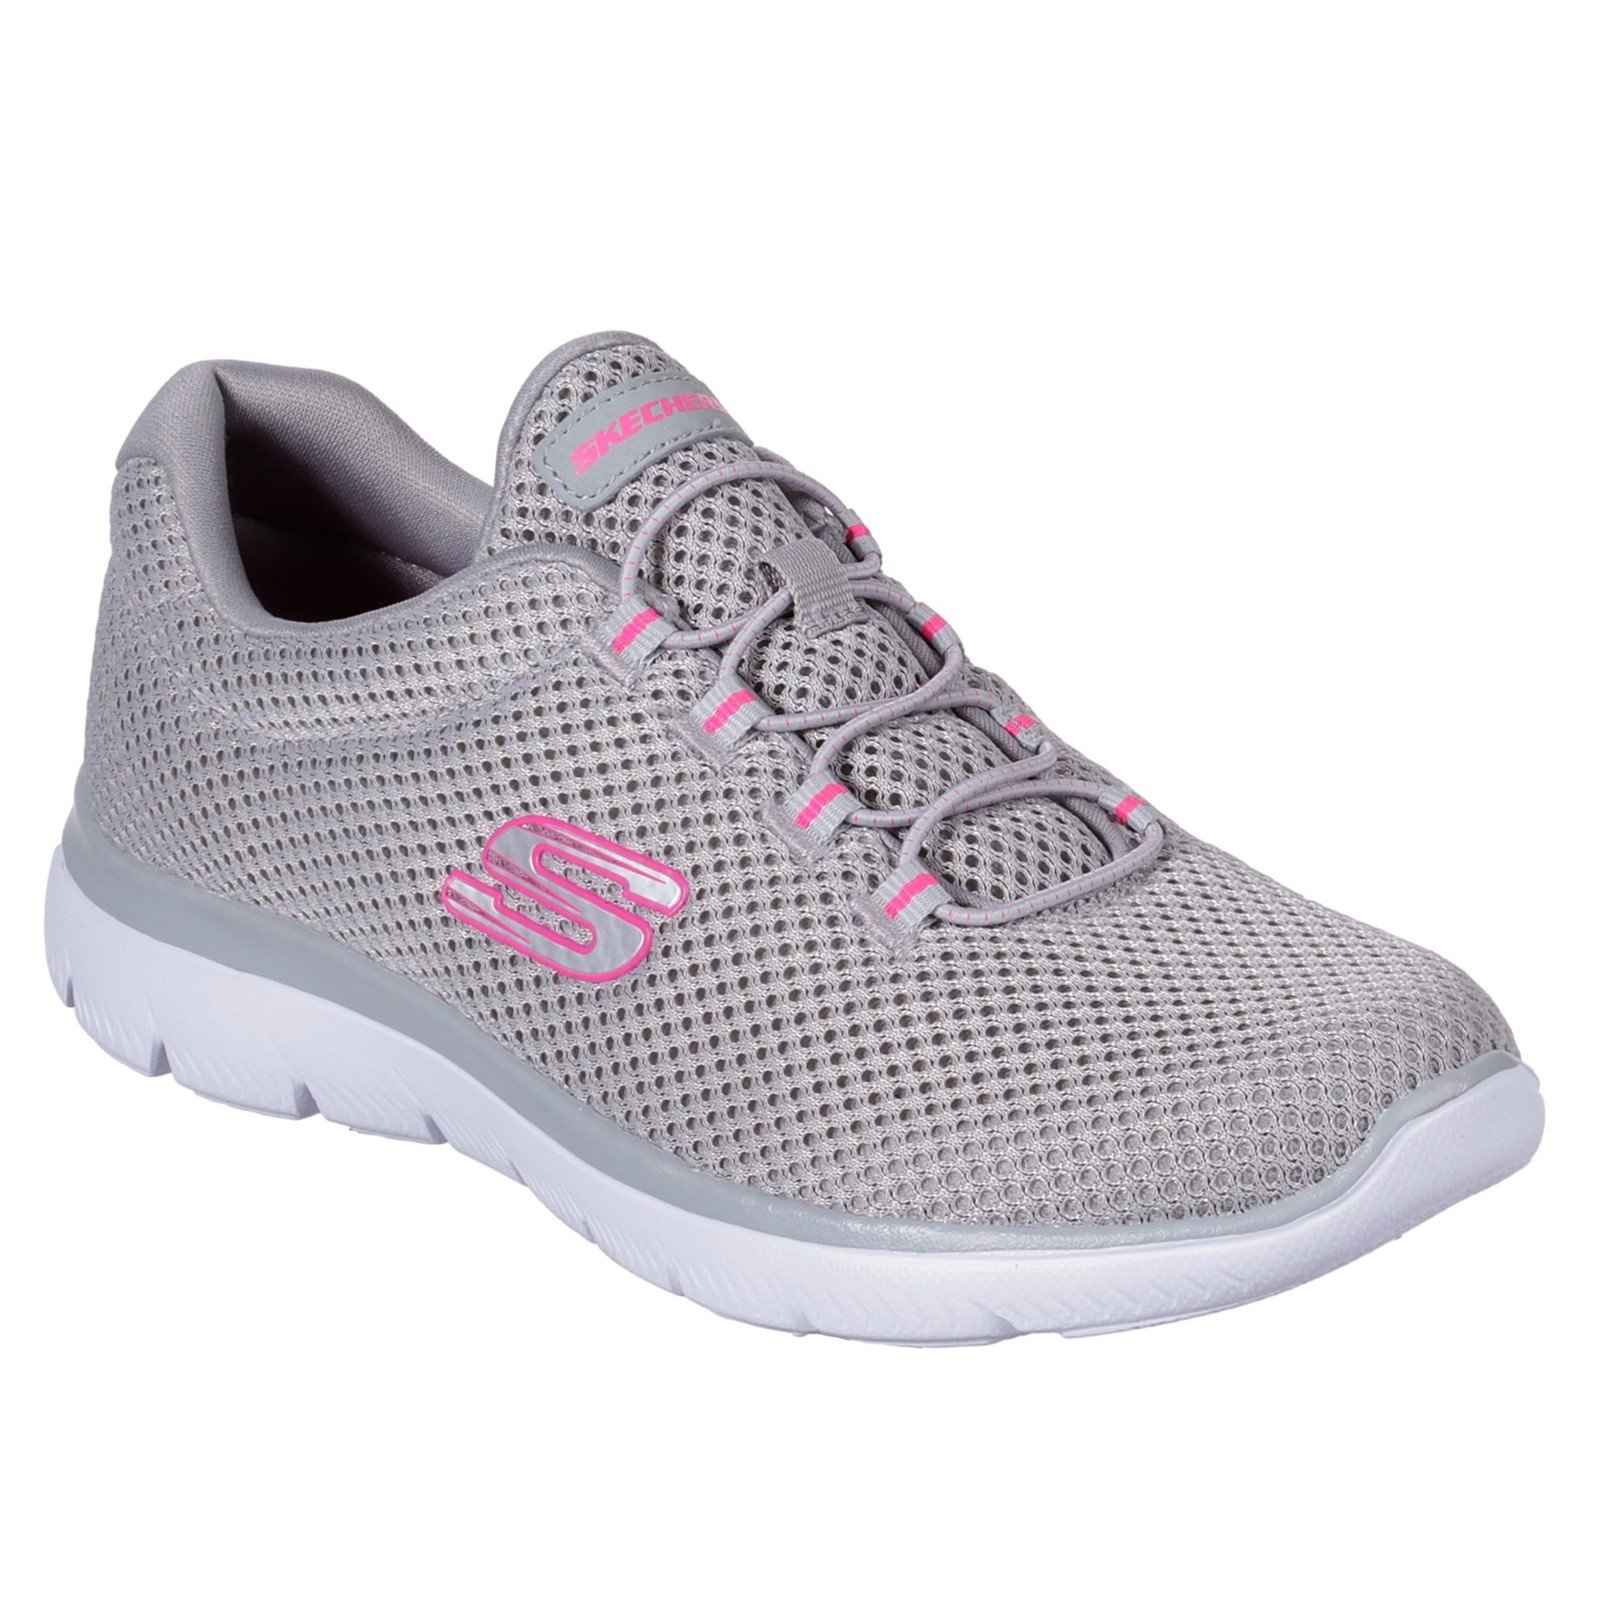 Skechers Women's Summits Slip On Trainer Various Colours 30708 - Grey/Hot pink 4